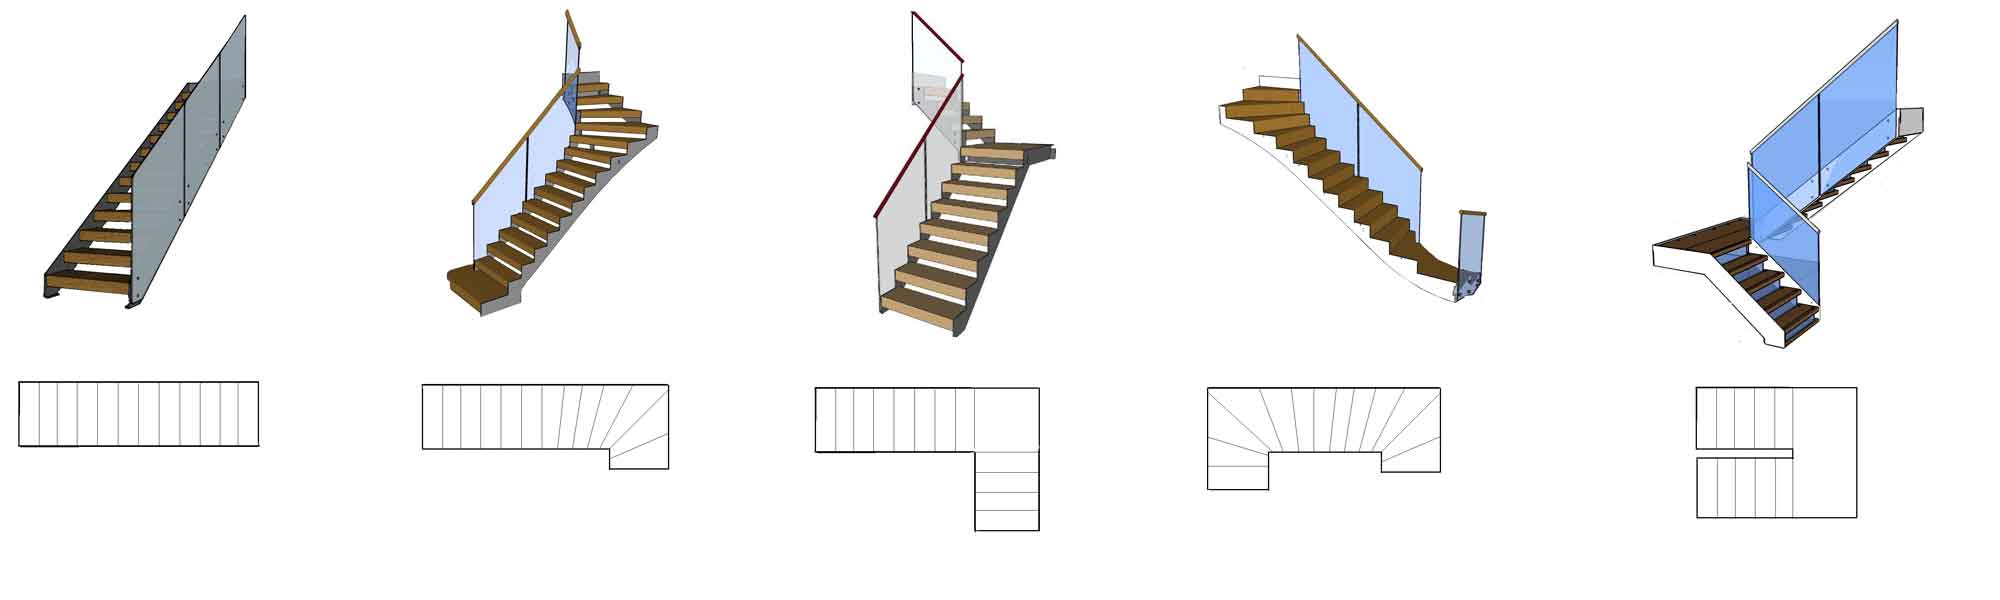 Model-500-Stair-Configurations-m